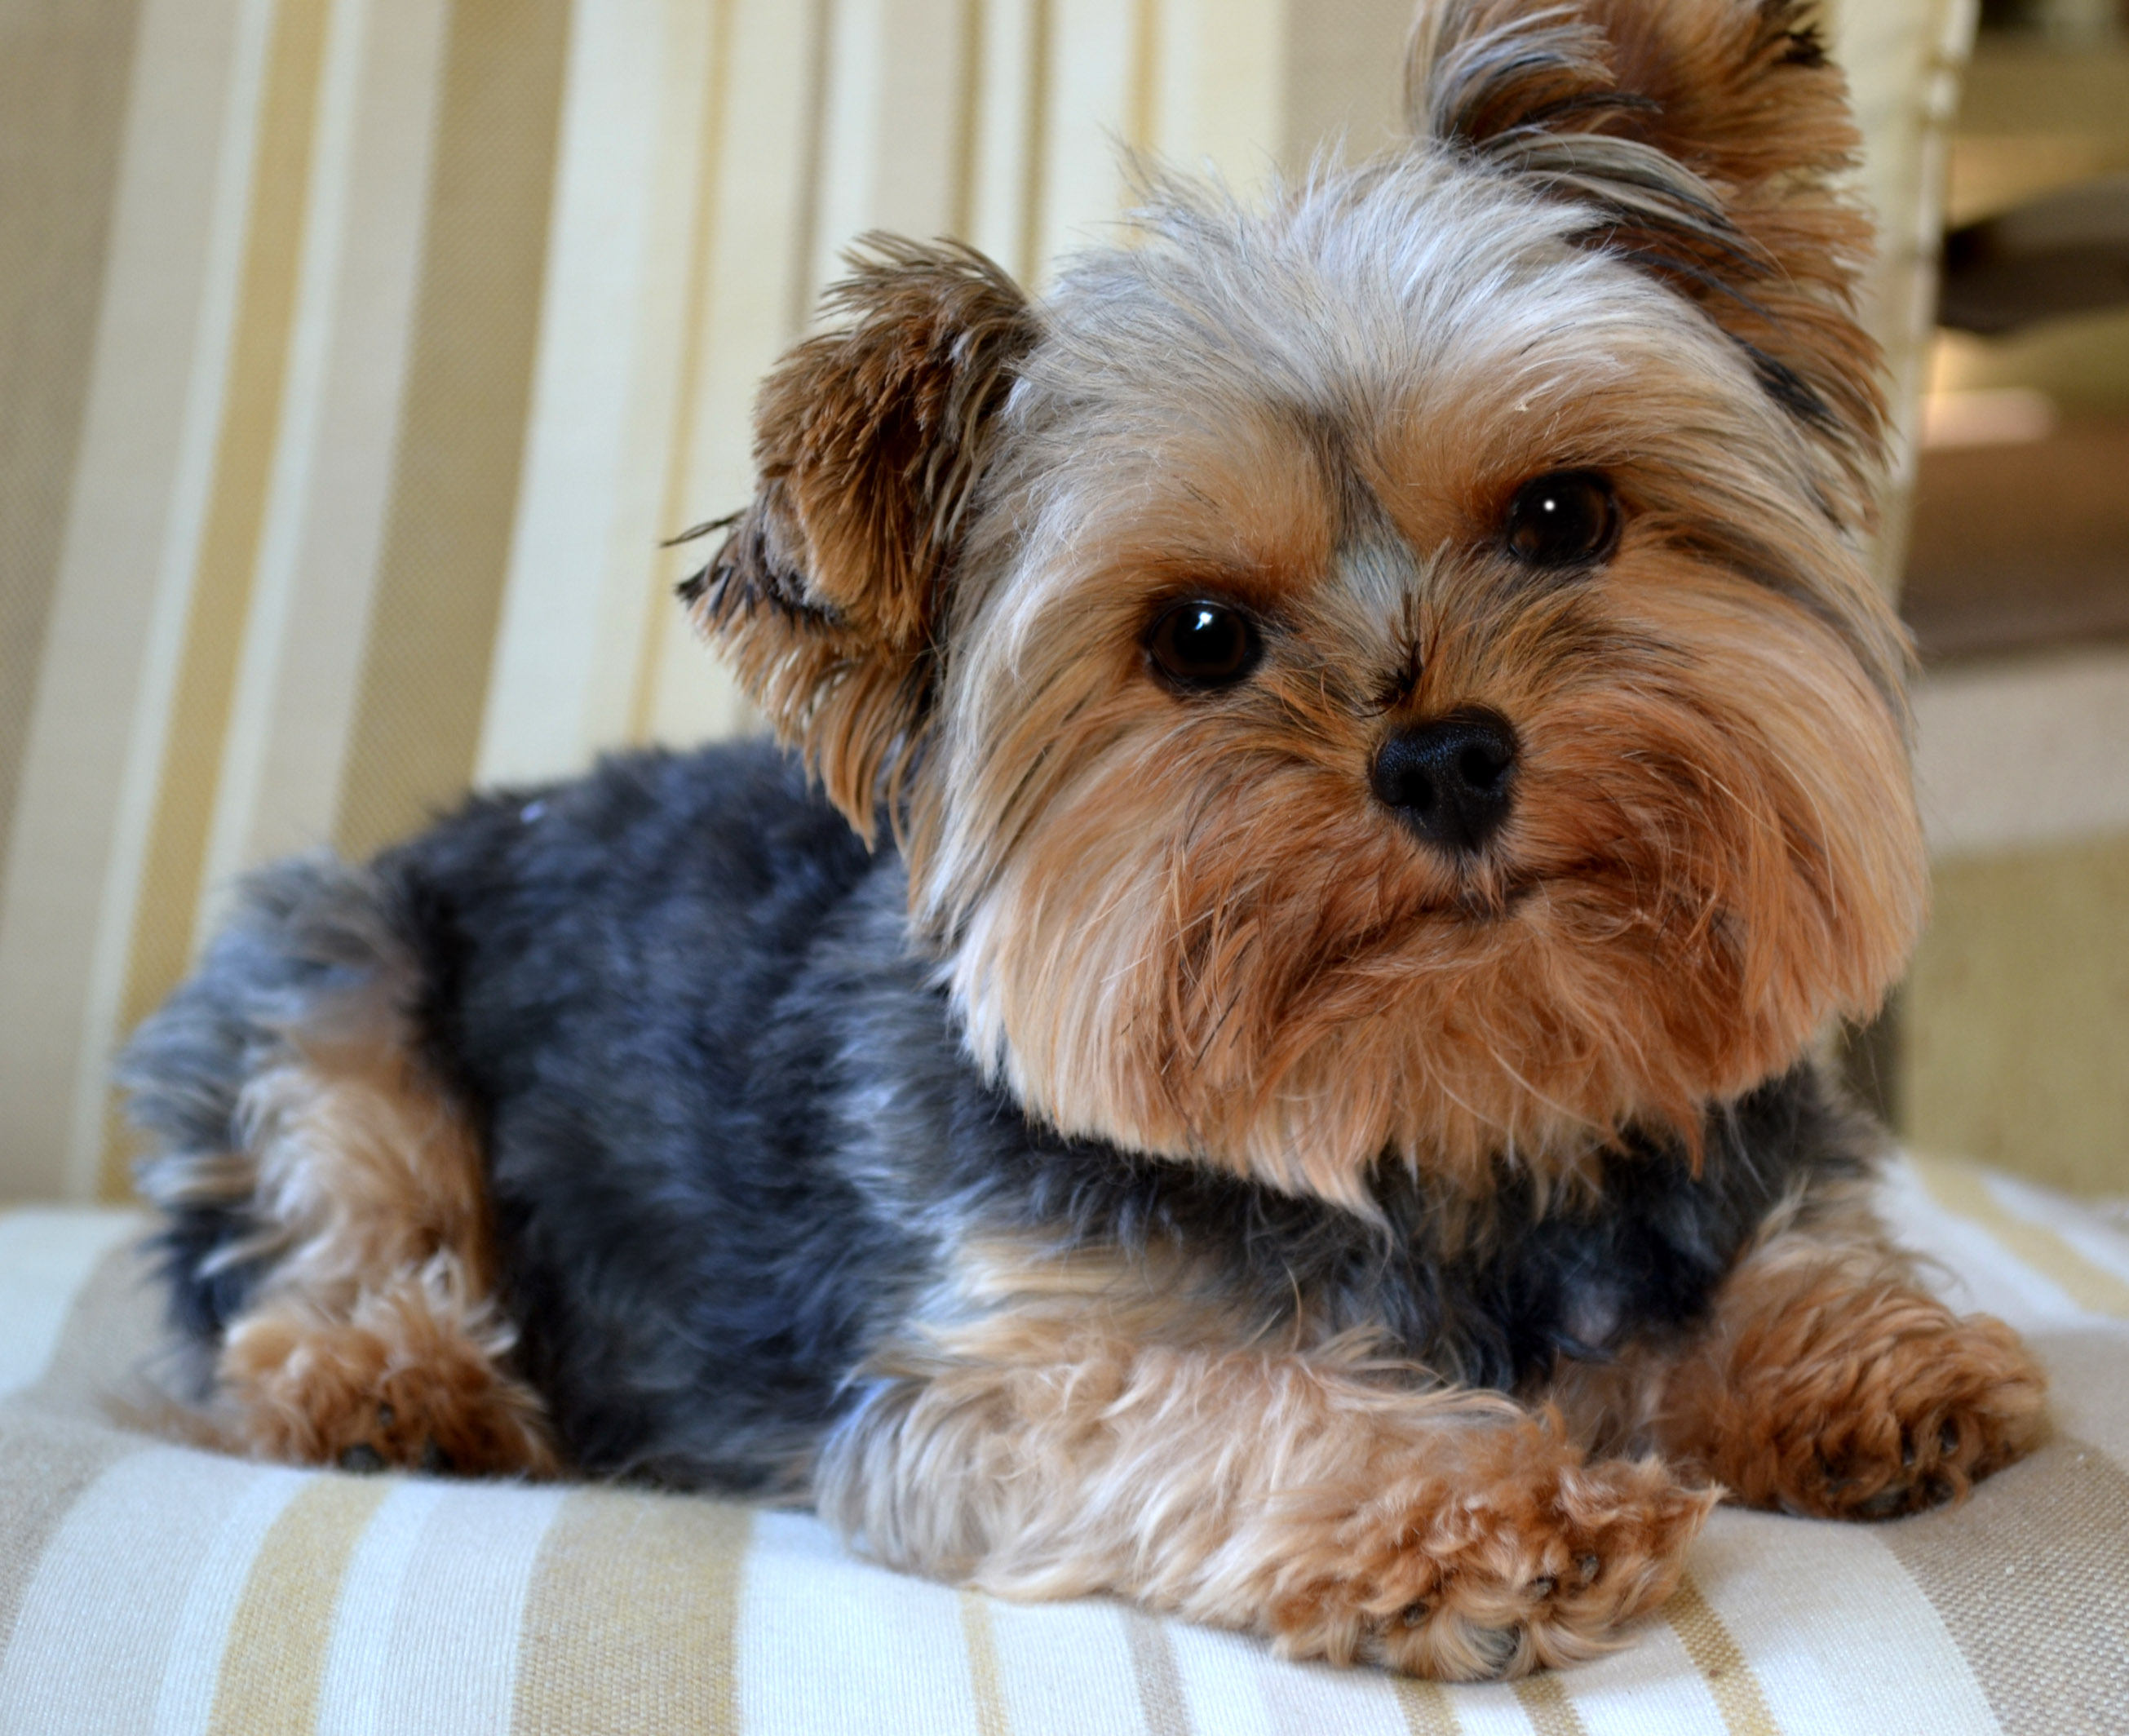 Innovative A Typical Yorkie What Is A Yorkie How To Groom A Yorkie Video How To Groom A Yorkie Yourself bark post How To Groom A Yorkie